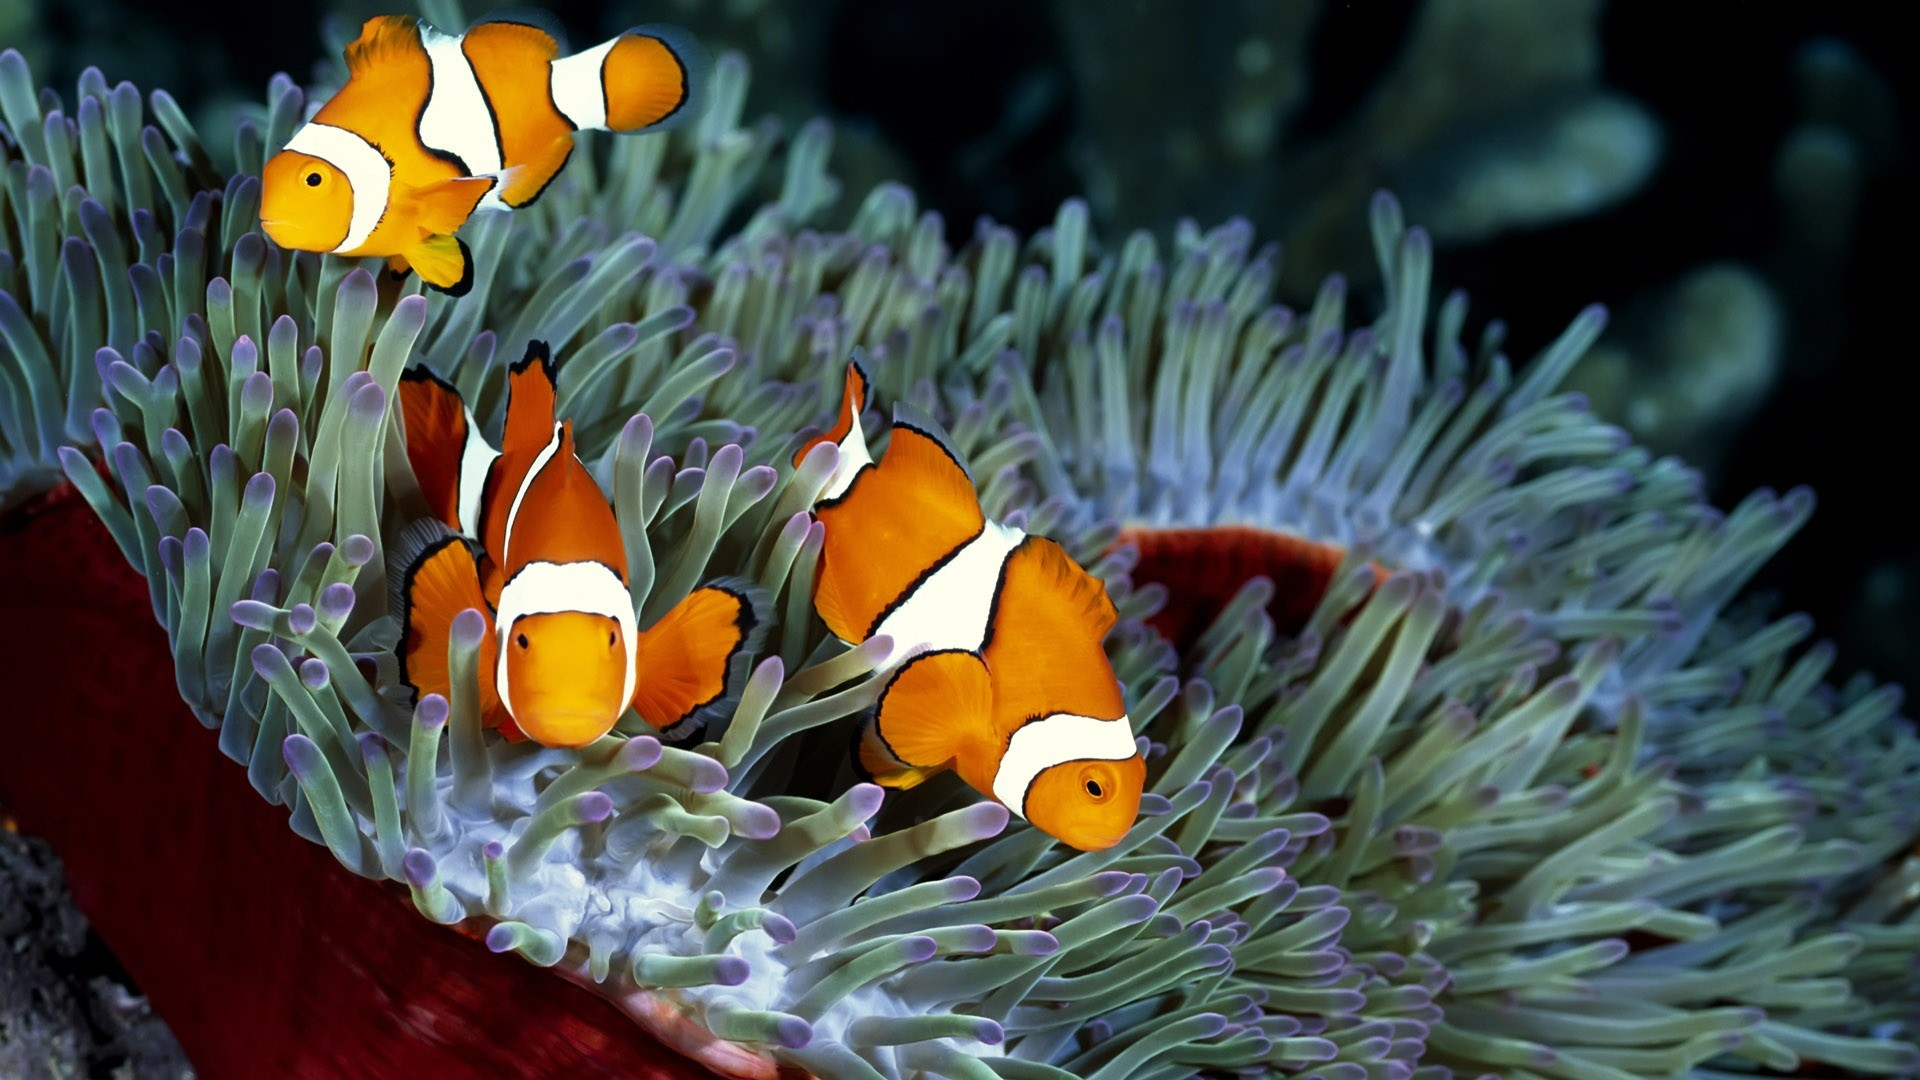 1920x1080 Wallpaper With A Orange Tropical Fish Hd Orange Fish Wallpapers .